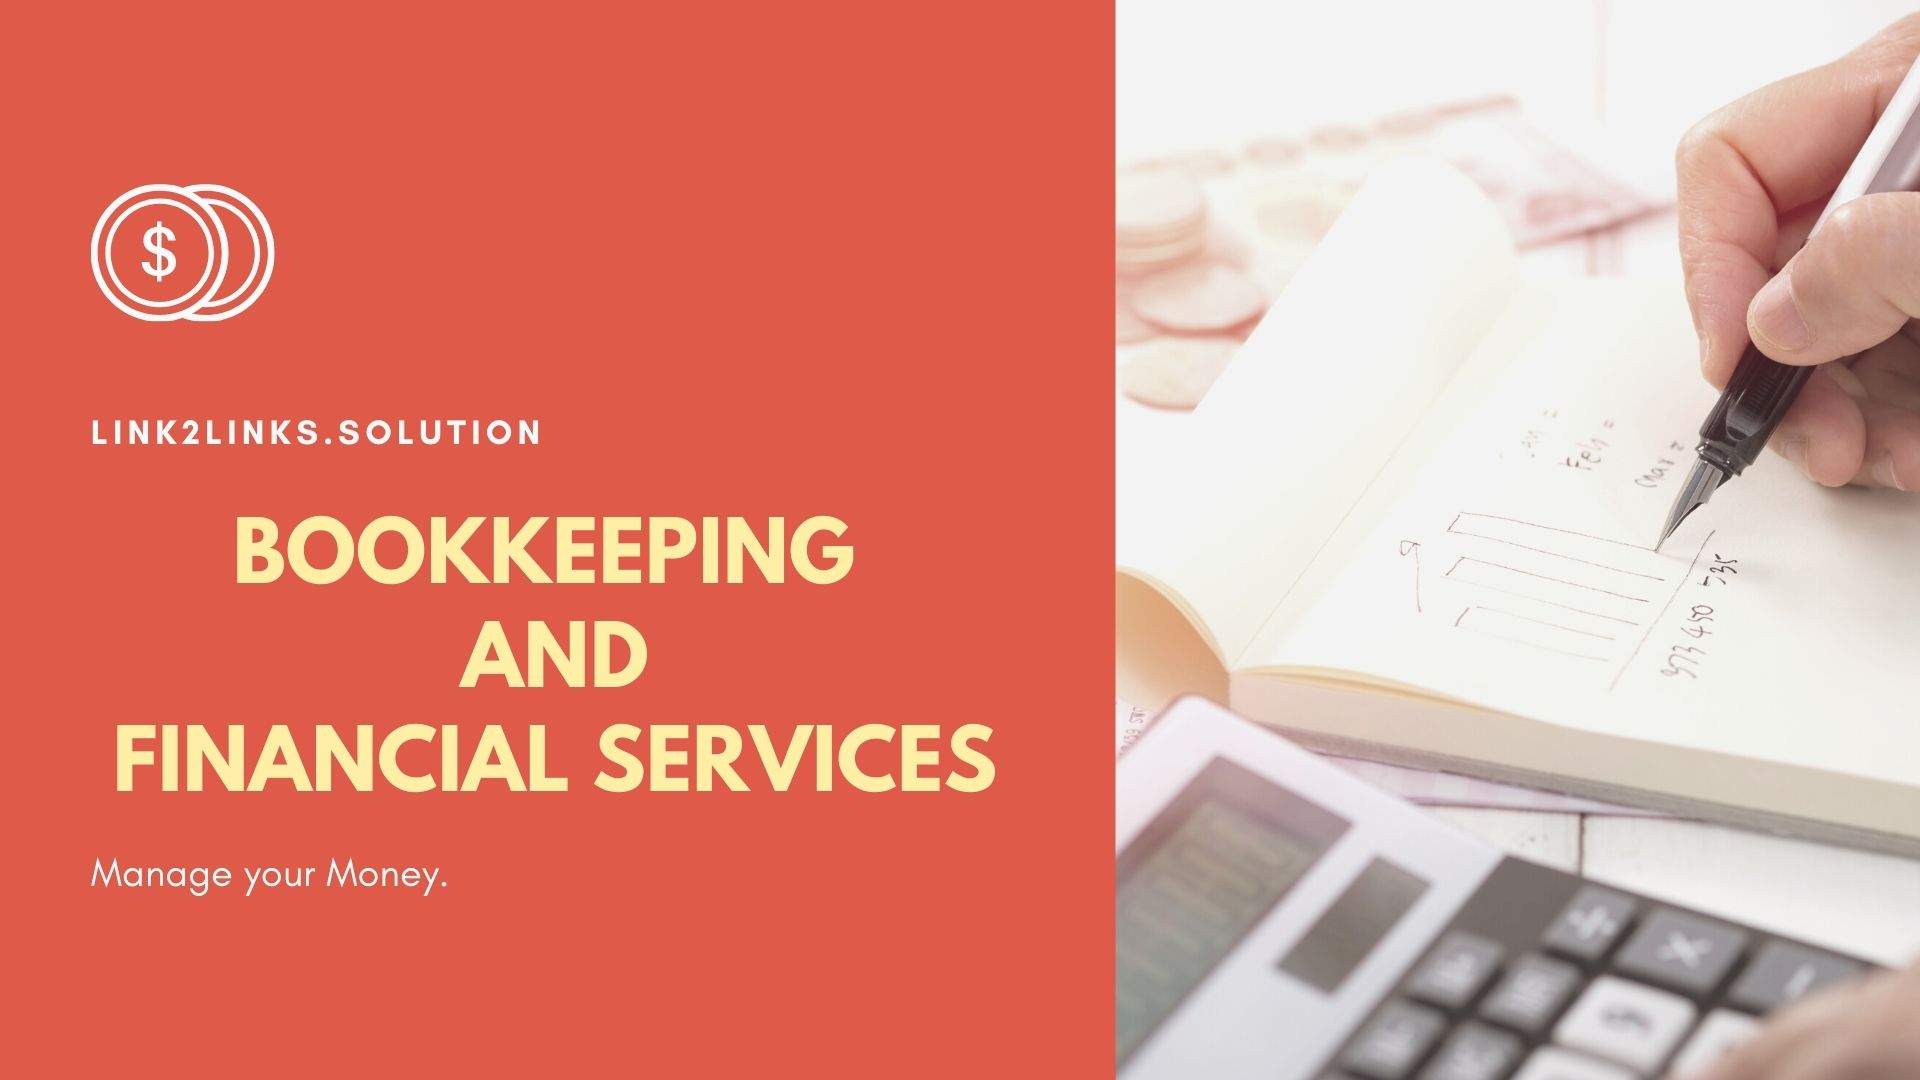 I will do your bookkeeping and accounting work